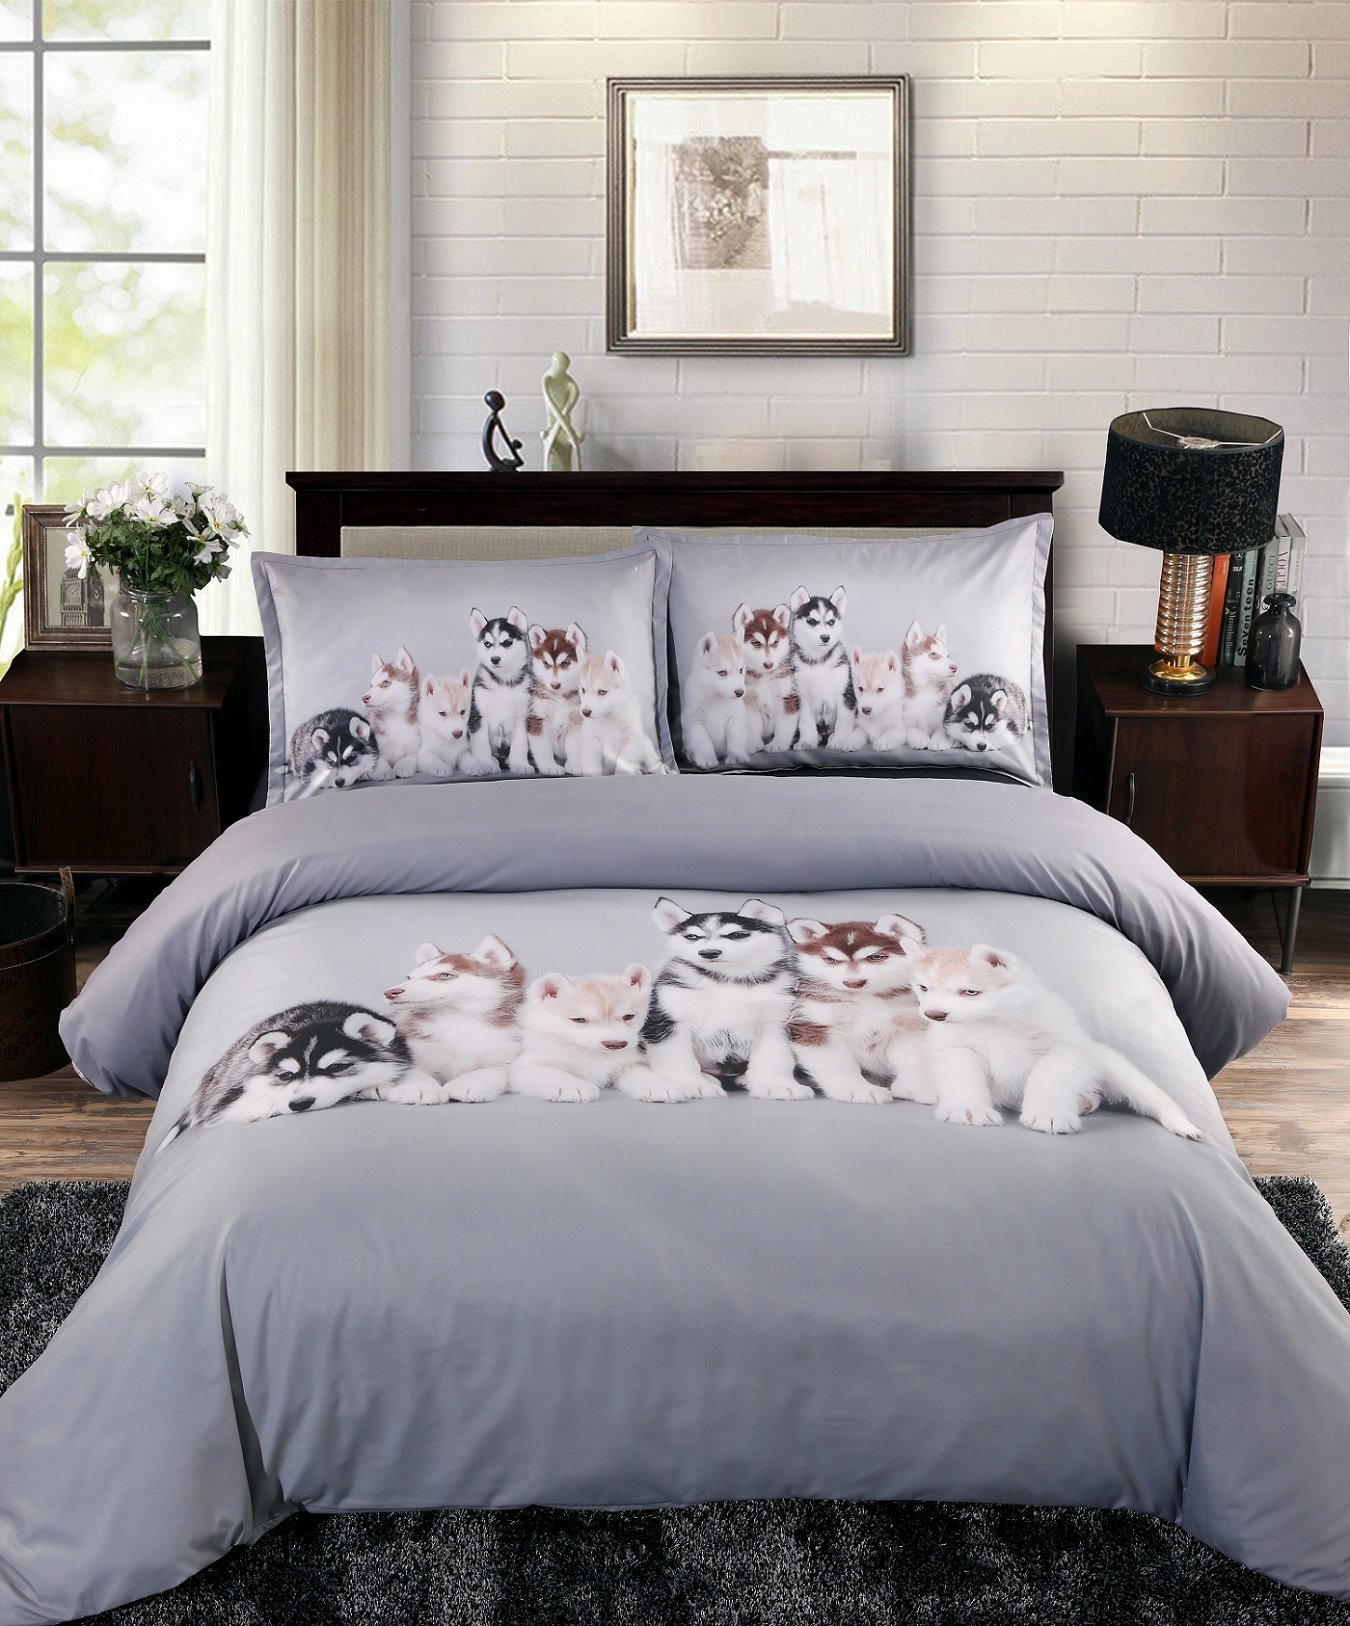 3D Husky Puppies Printed 4-Piece Bedding Sets/Duvet Covers beddinginn